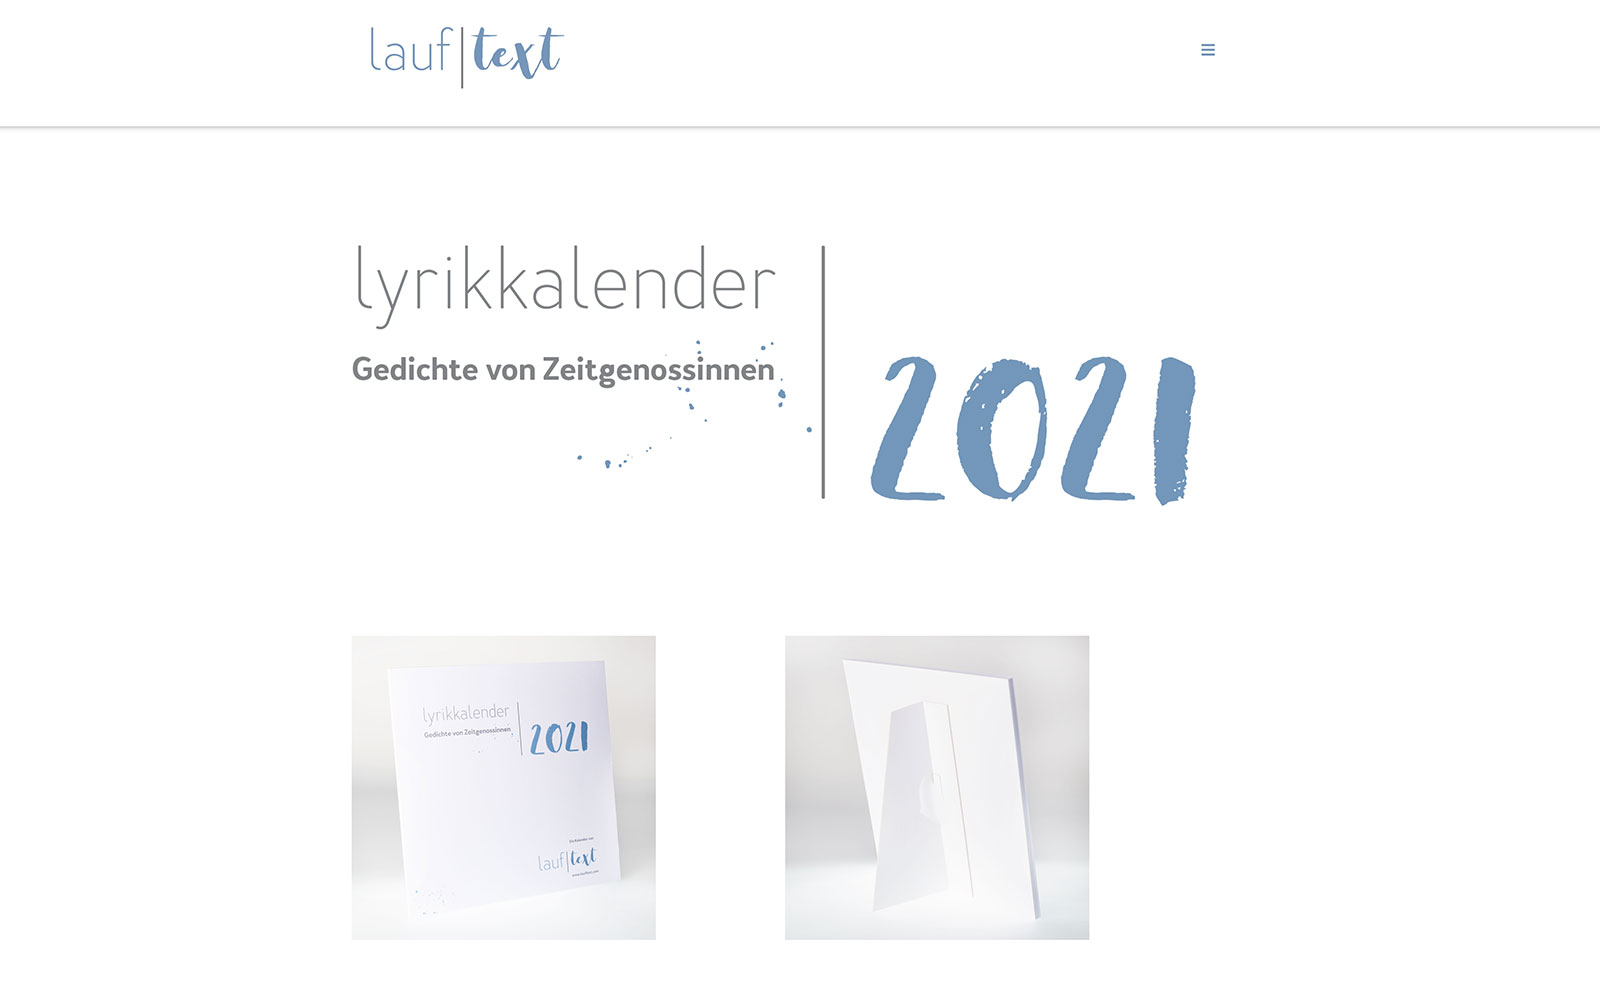 referenz web – lauftext sidebar